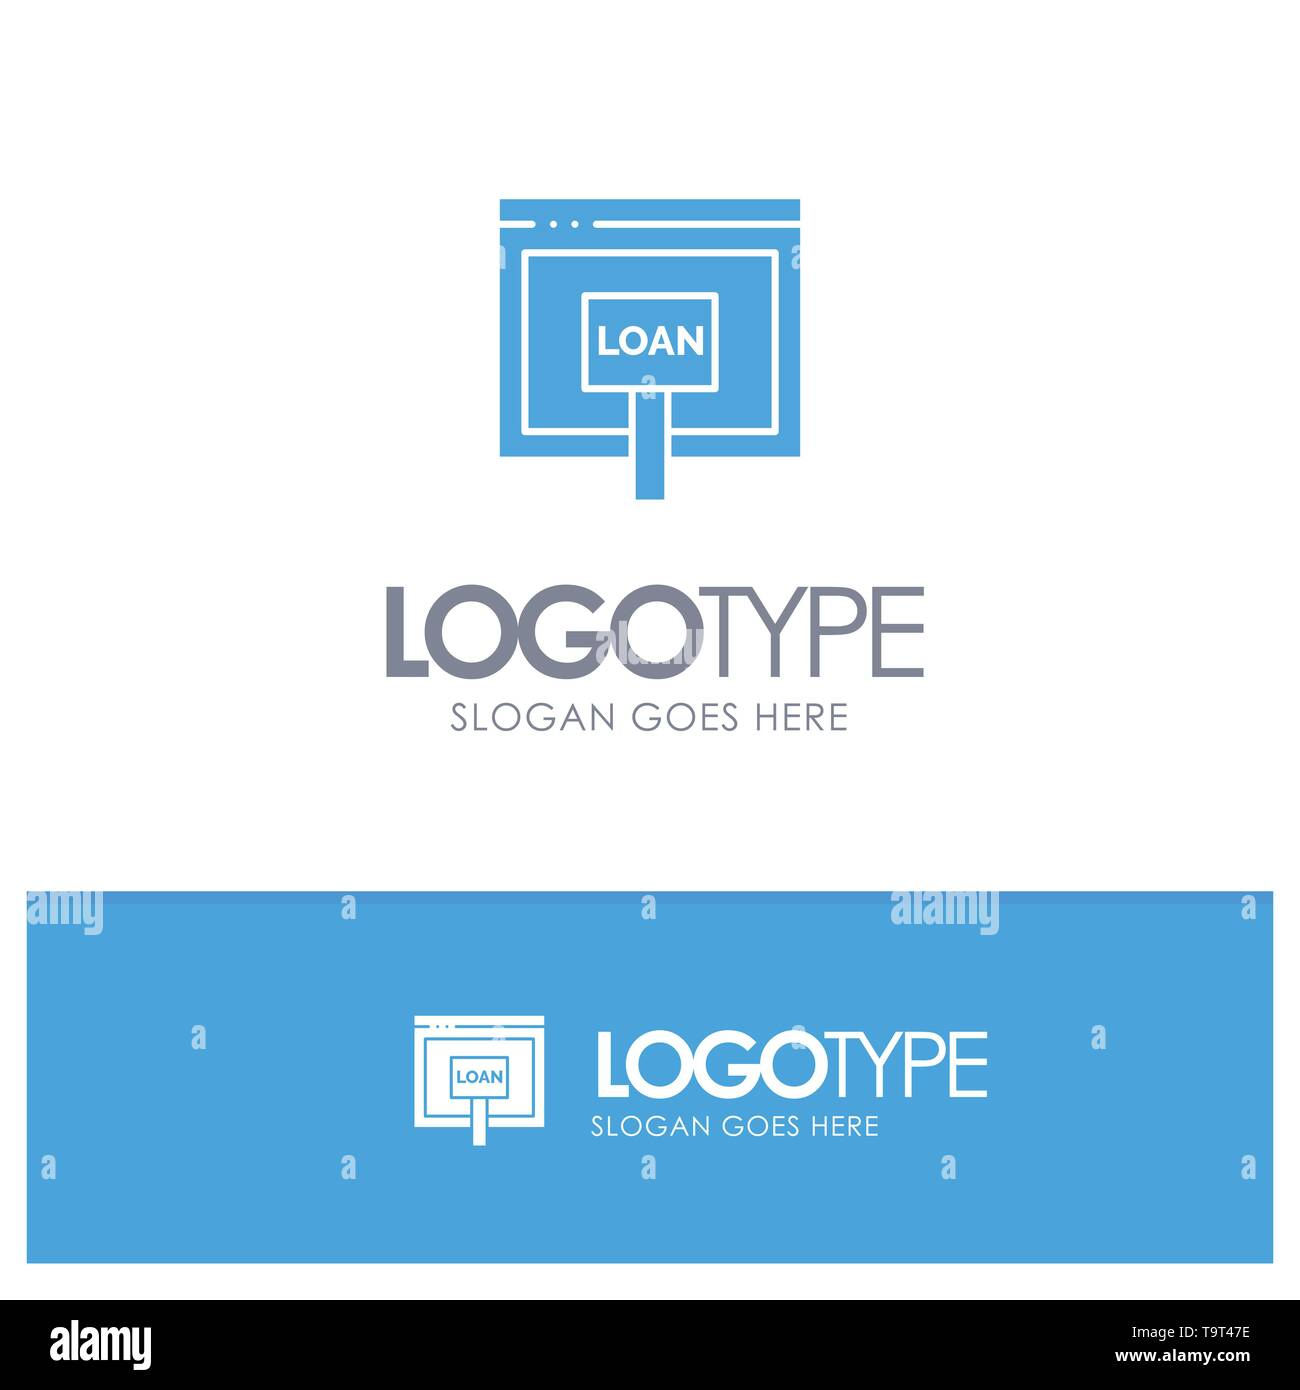 Credit, Internet, Loan, Money, Online Blue Solid Logo with place for tagline - Stock Image